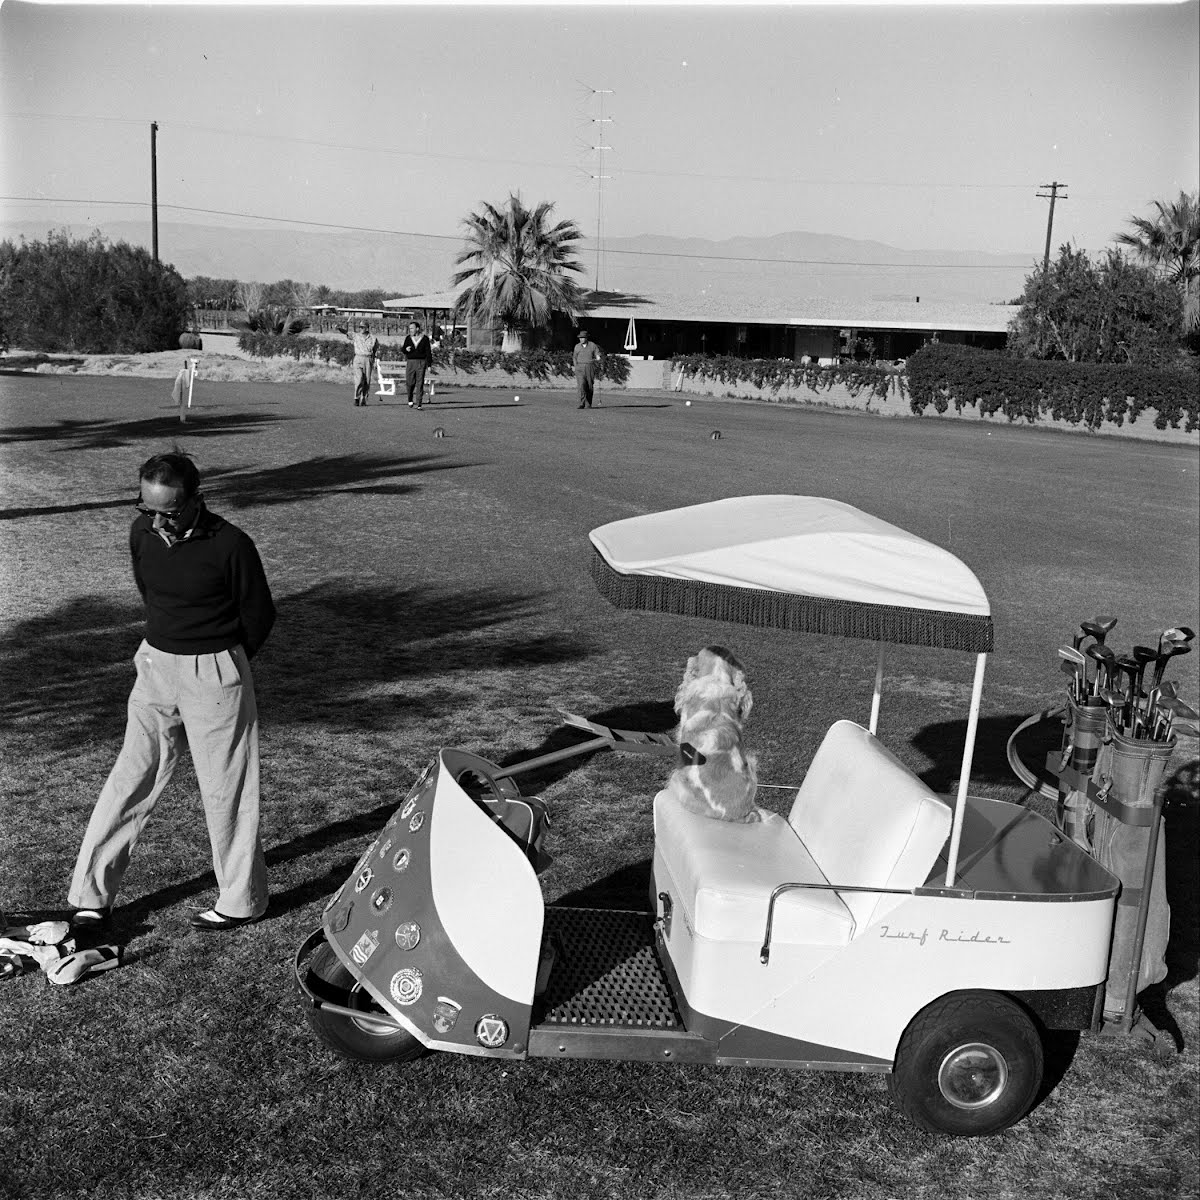 Golf Carts At Thunderbird Golf Club At Palm Springs, Calif.